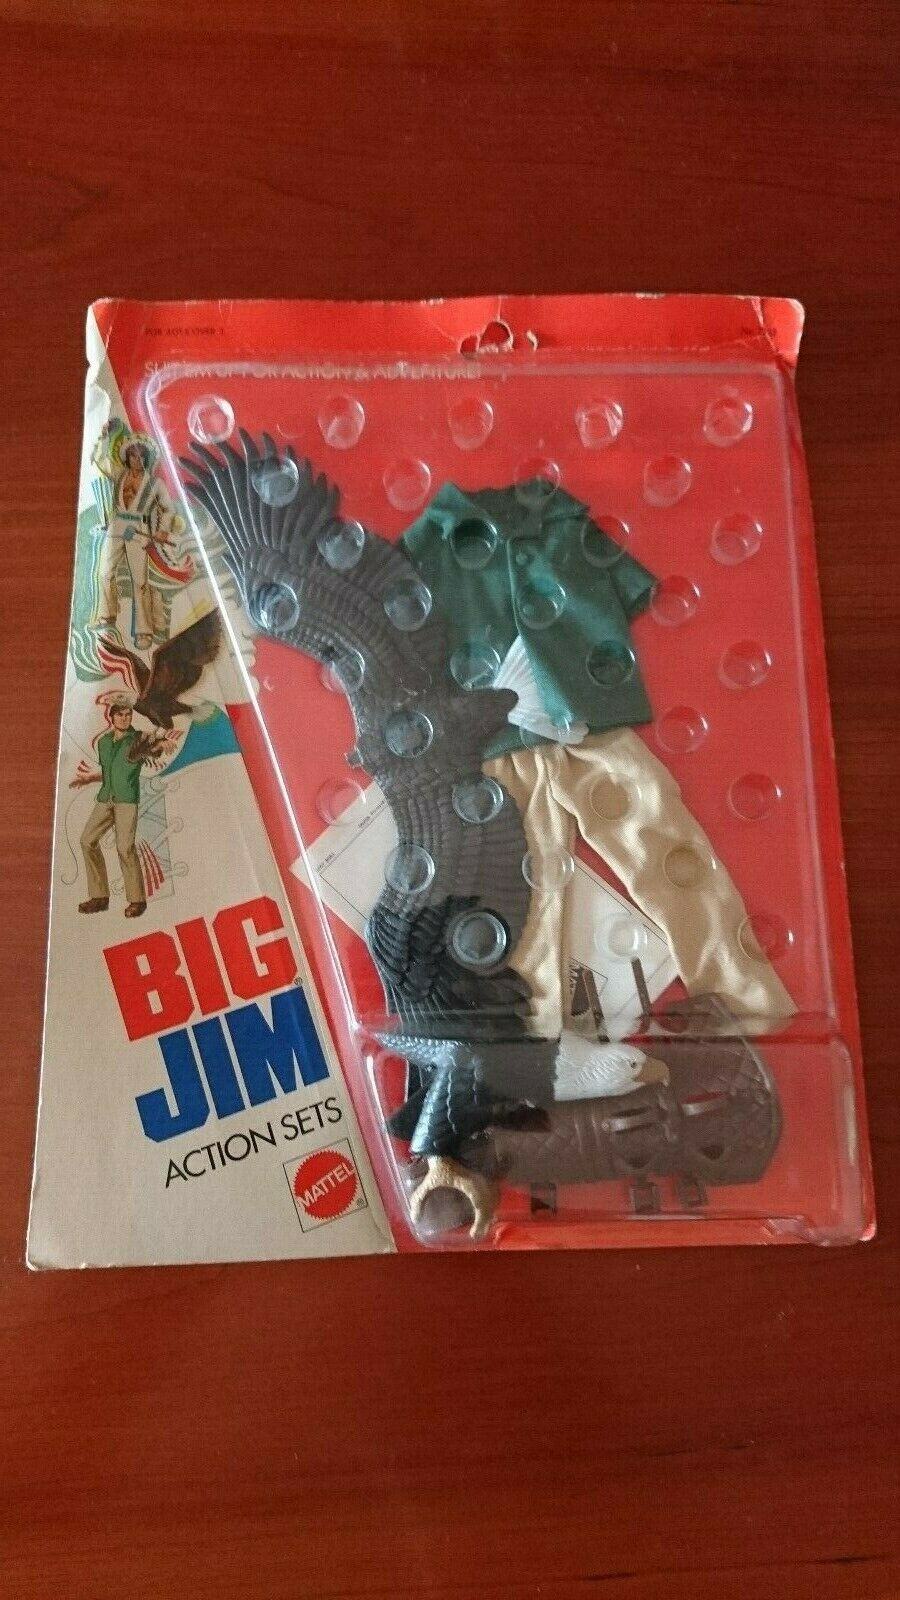 BIG JIM MATTEL ADVENTURE SET OUTFIT   7308 EAGLE RANGER SEALED & CARDED BUONO